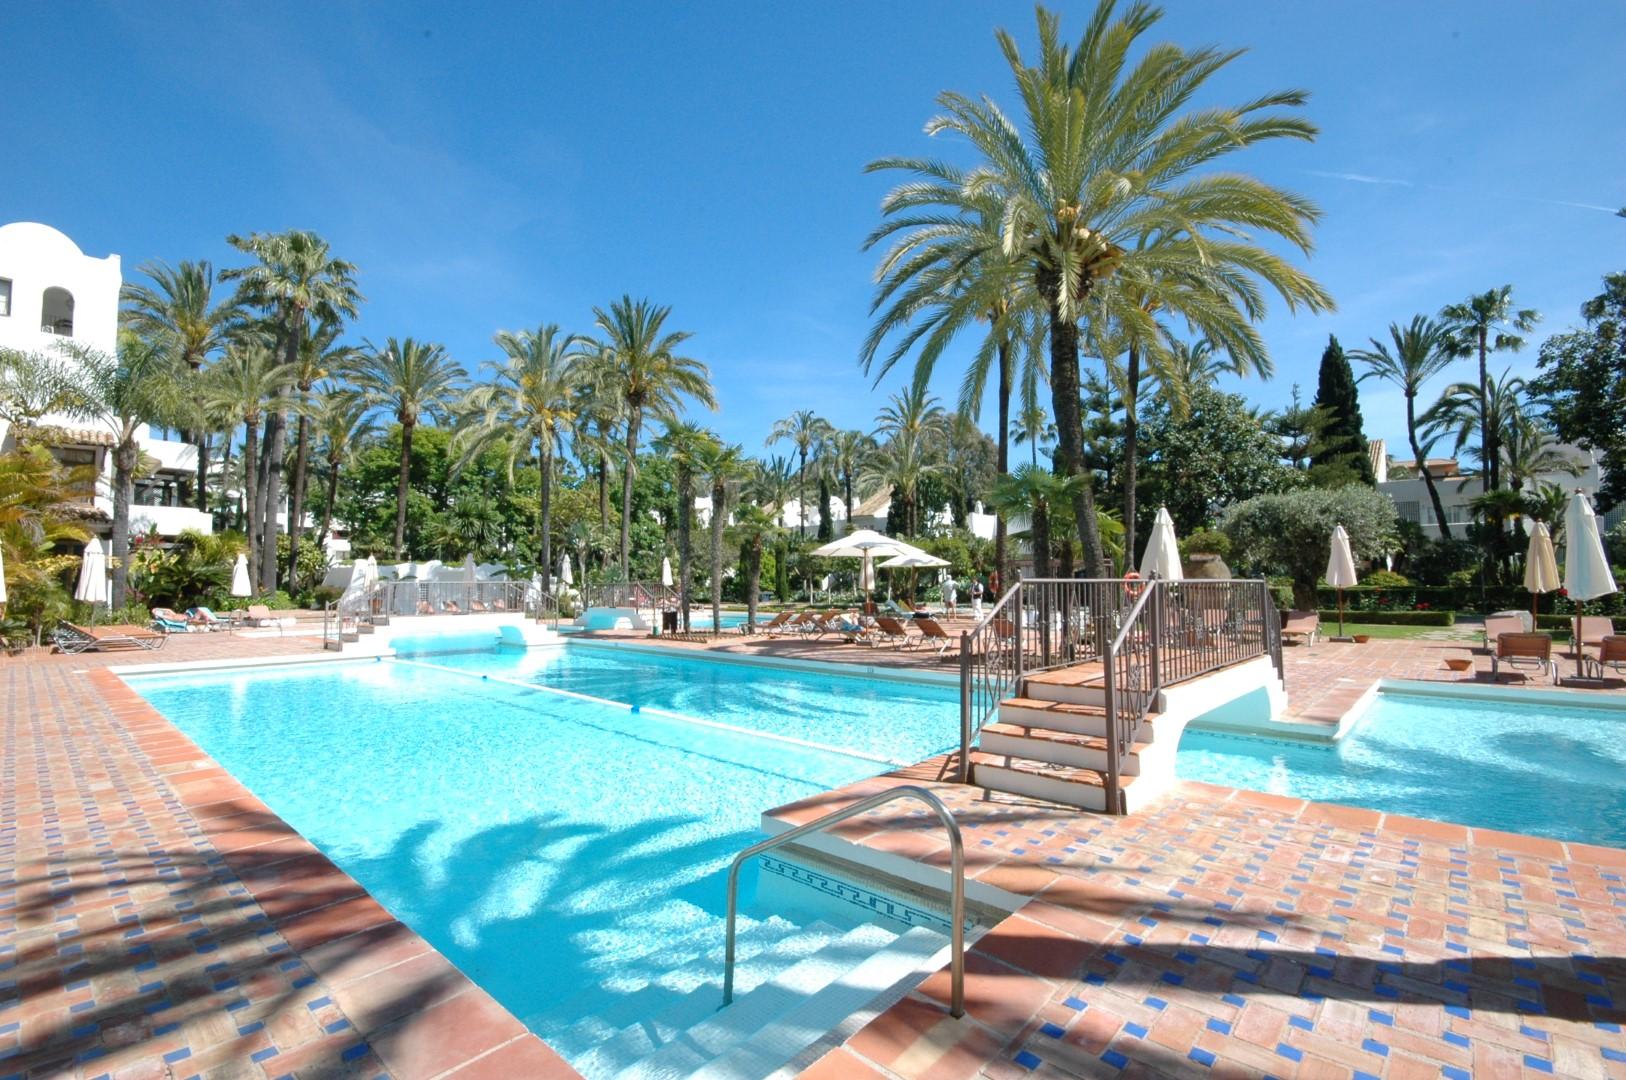 Holiday apartment in Marbella – 2bedrooms